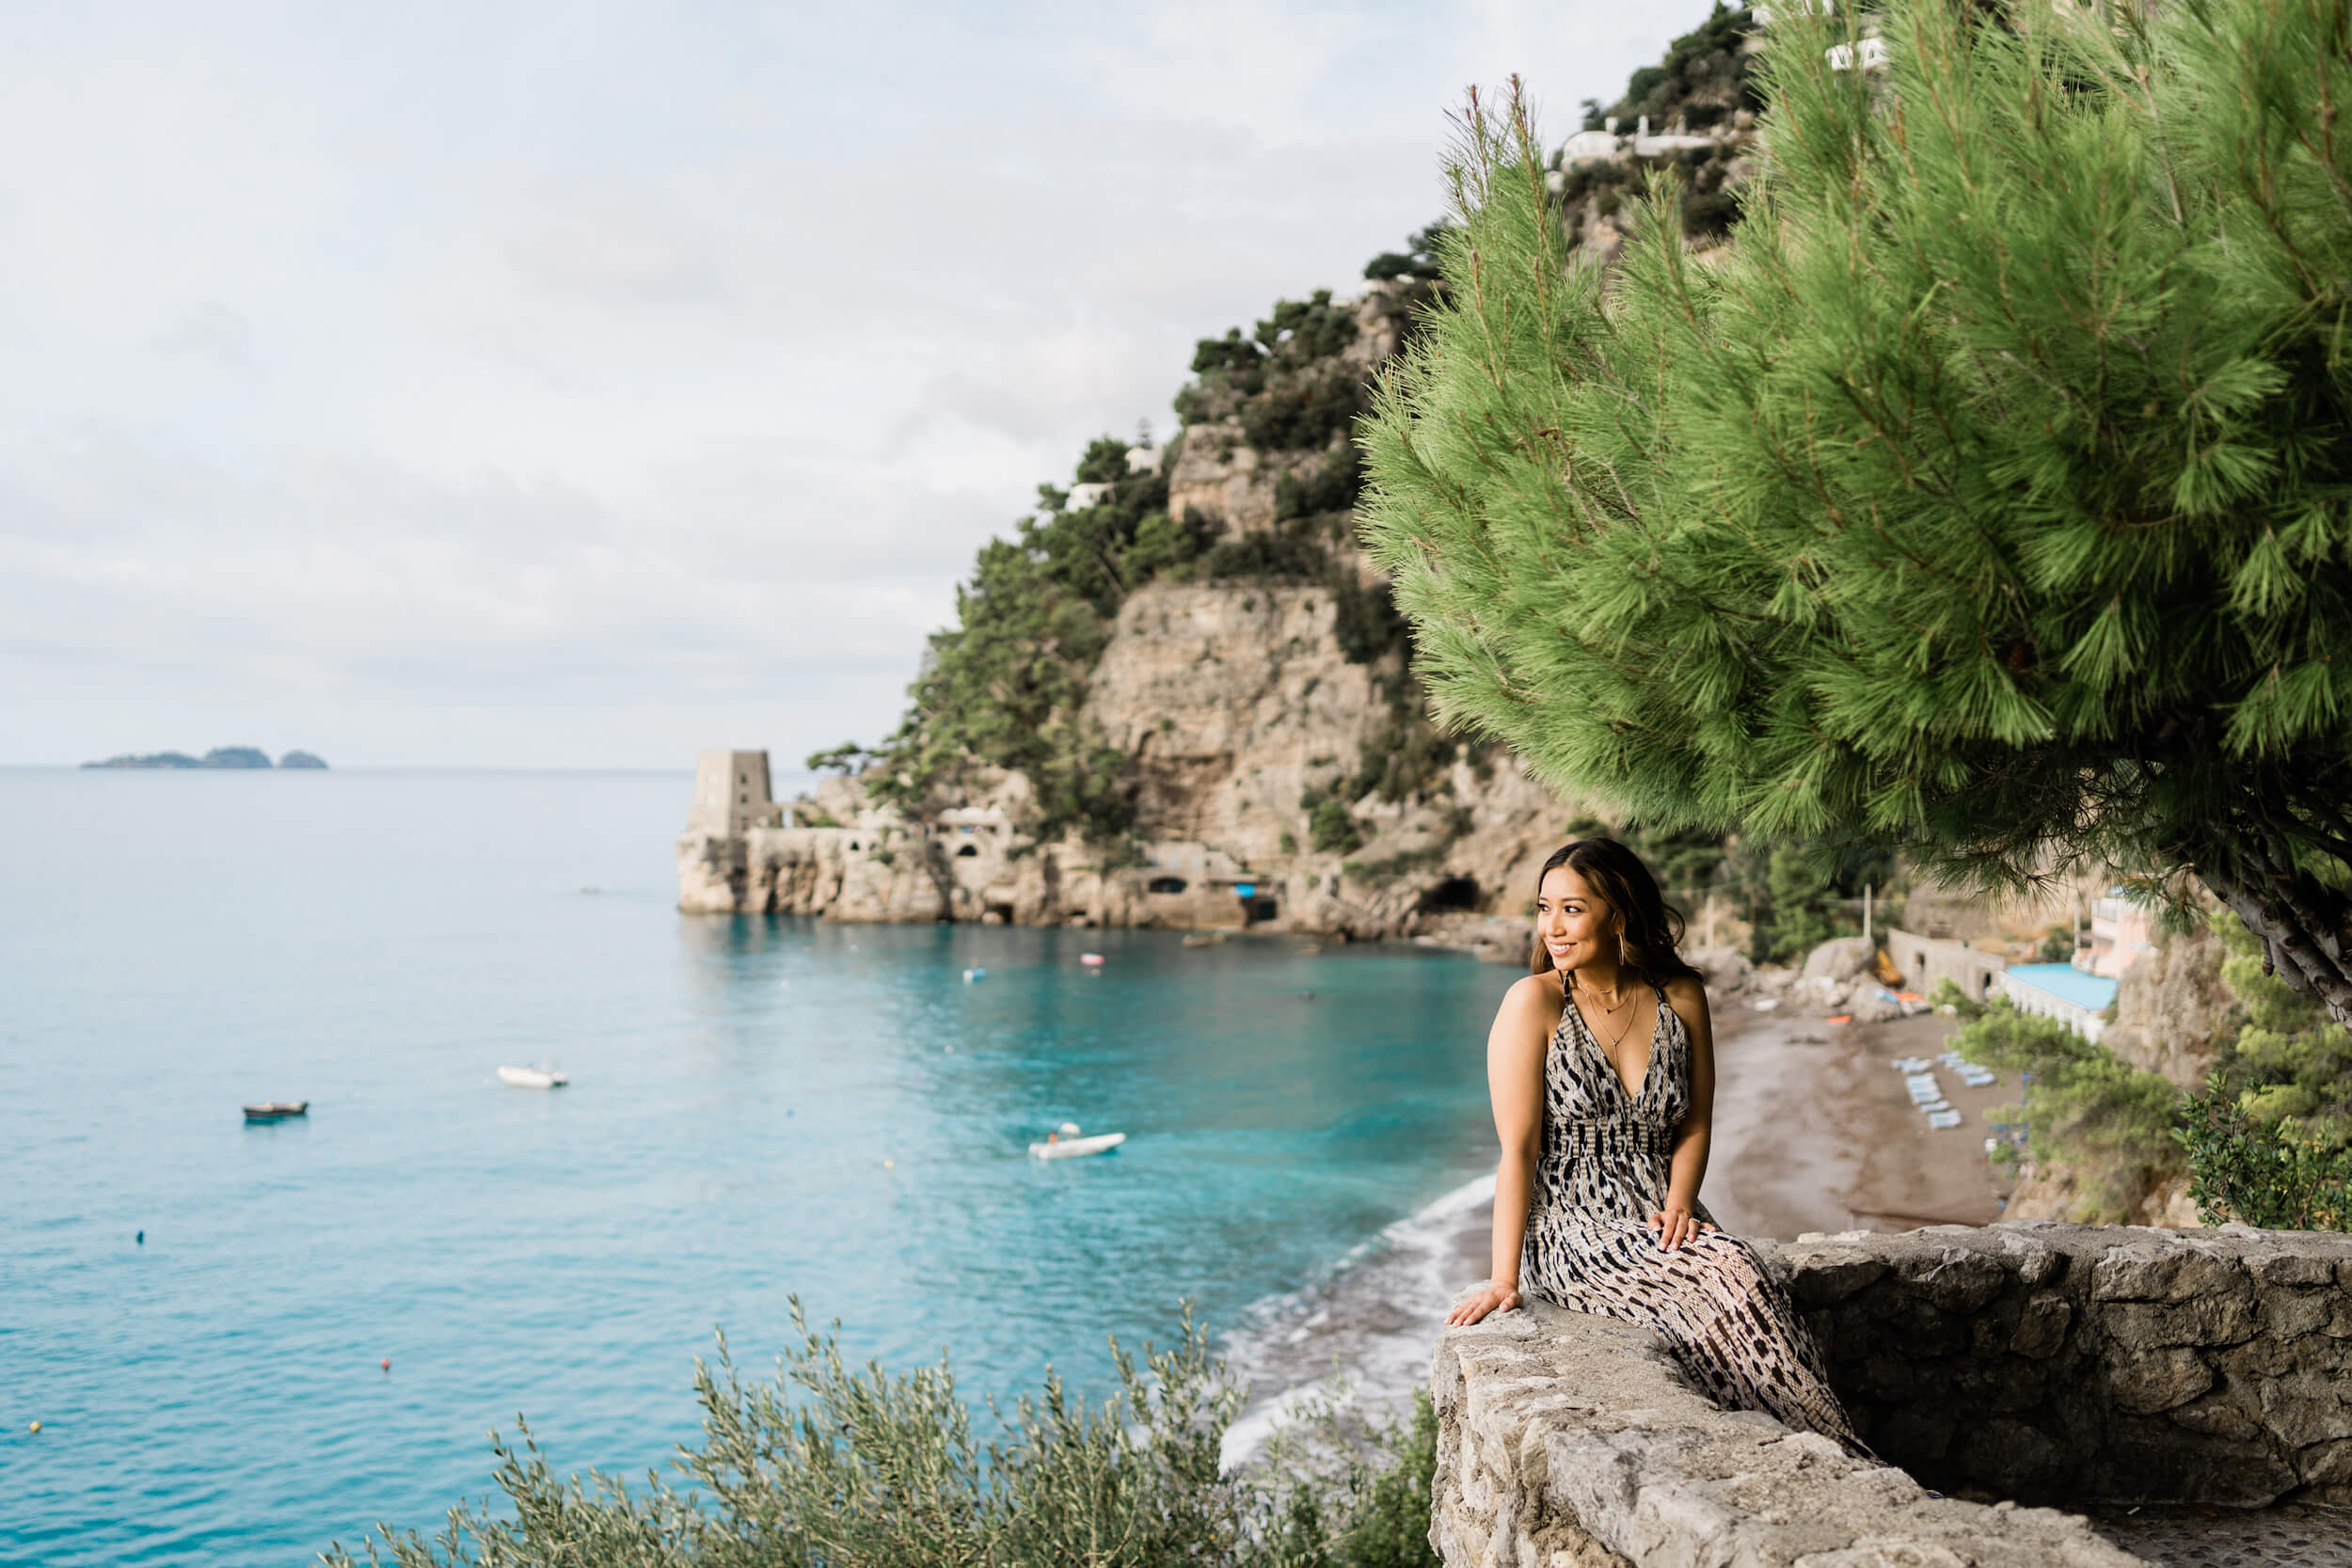 Solo traveller in Positano on the Amalfi Coast having a Flytographer photo shoot to capture memories